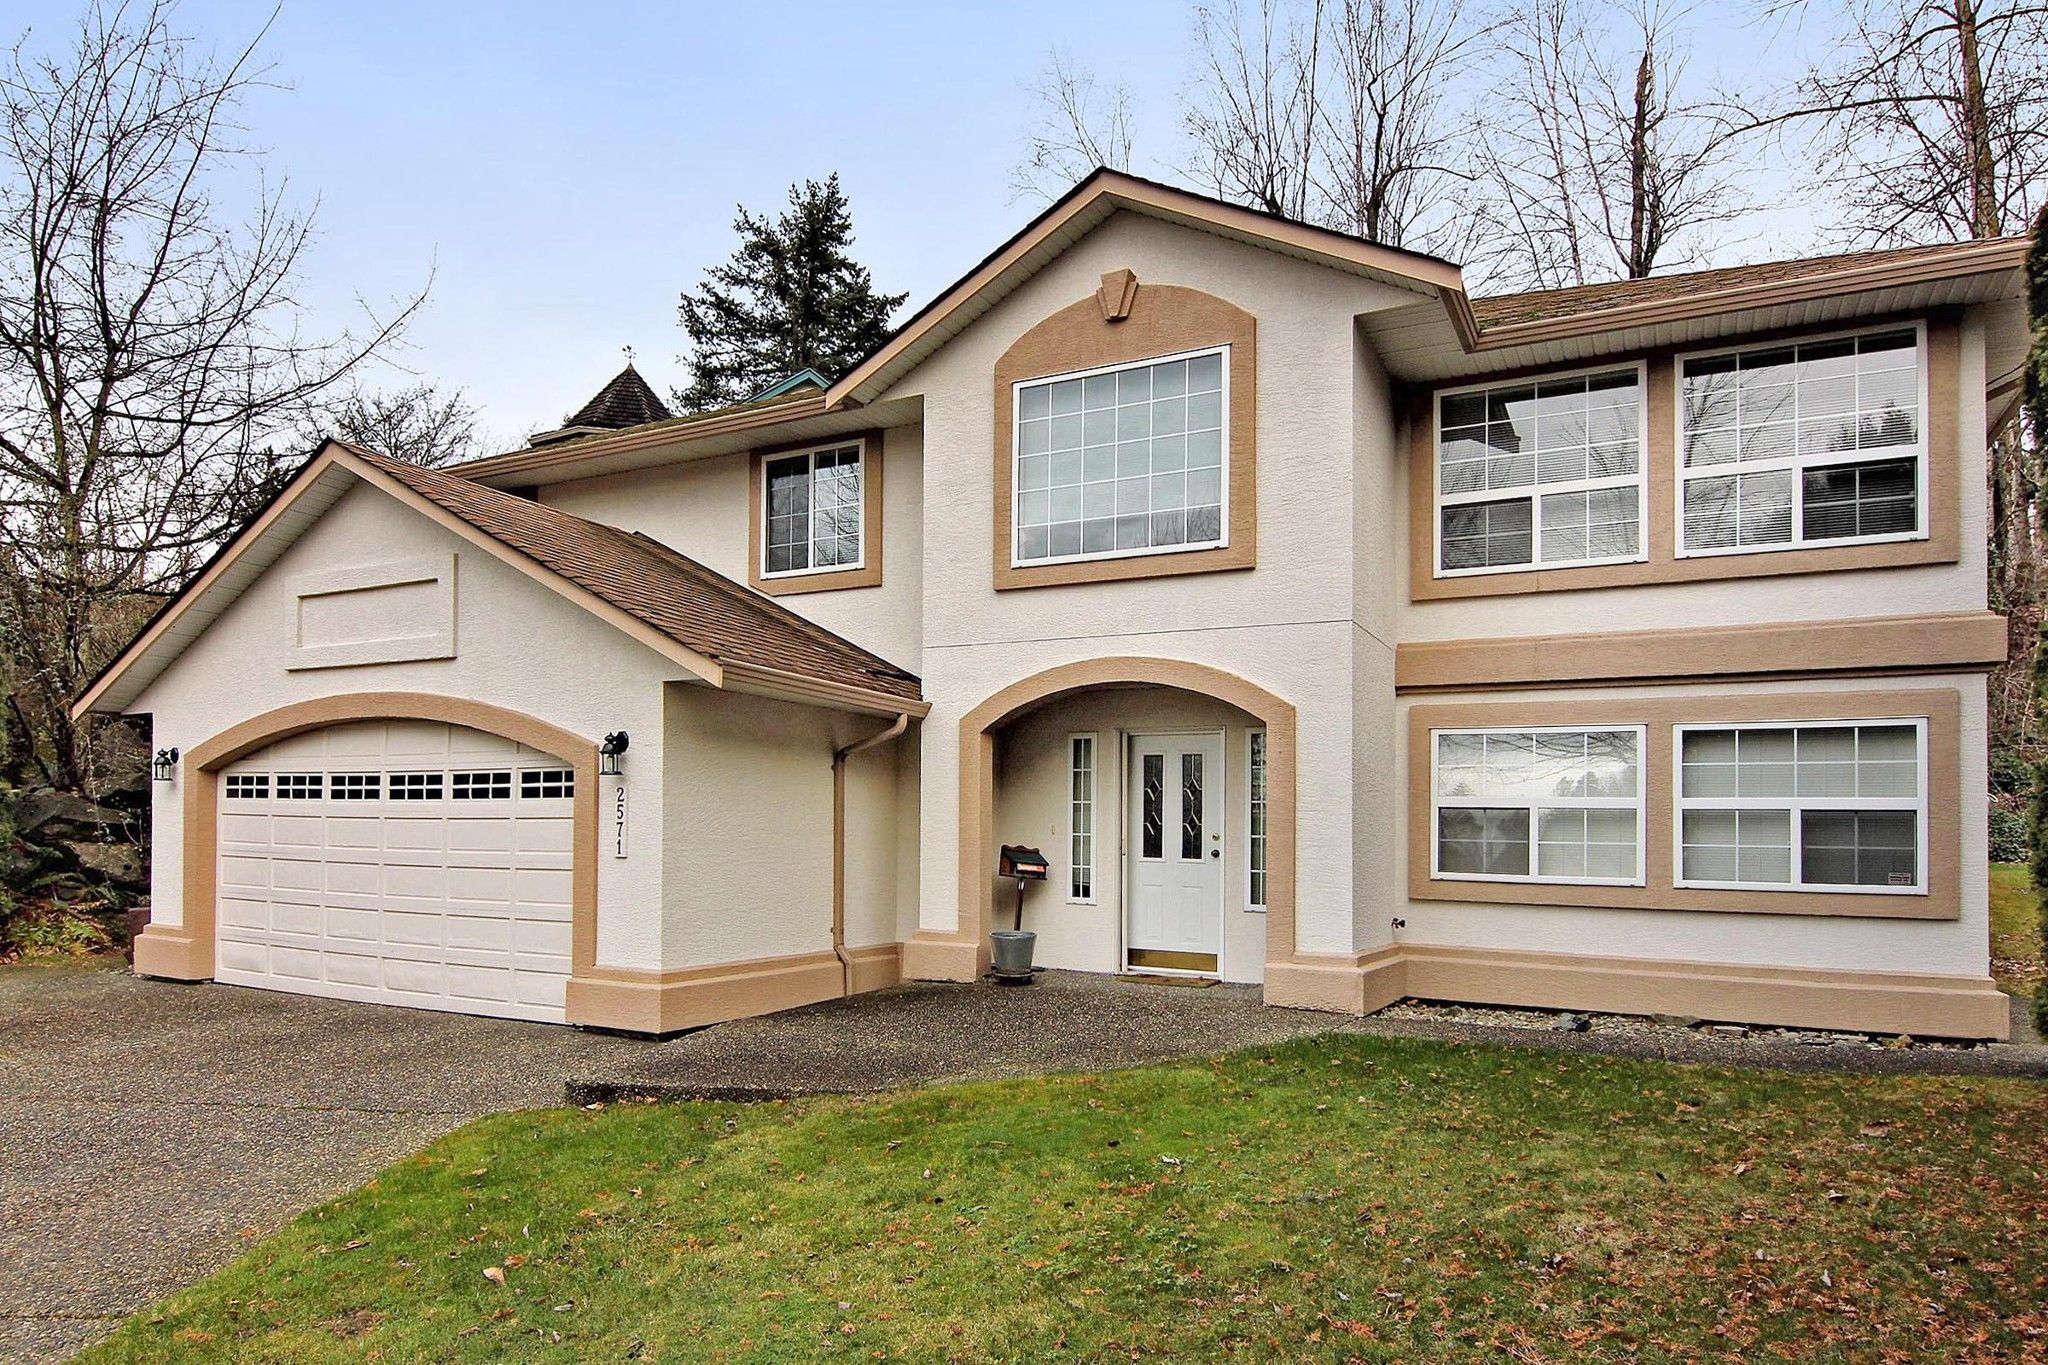 """Main Photo: 2571 WHATCOM Place in Abbotsford: Abbotsford East House for sale in """"Regal Park"""" : MLS®# R2332981"""